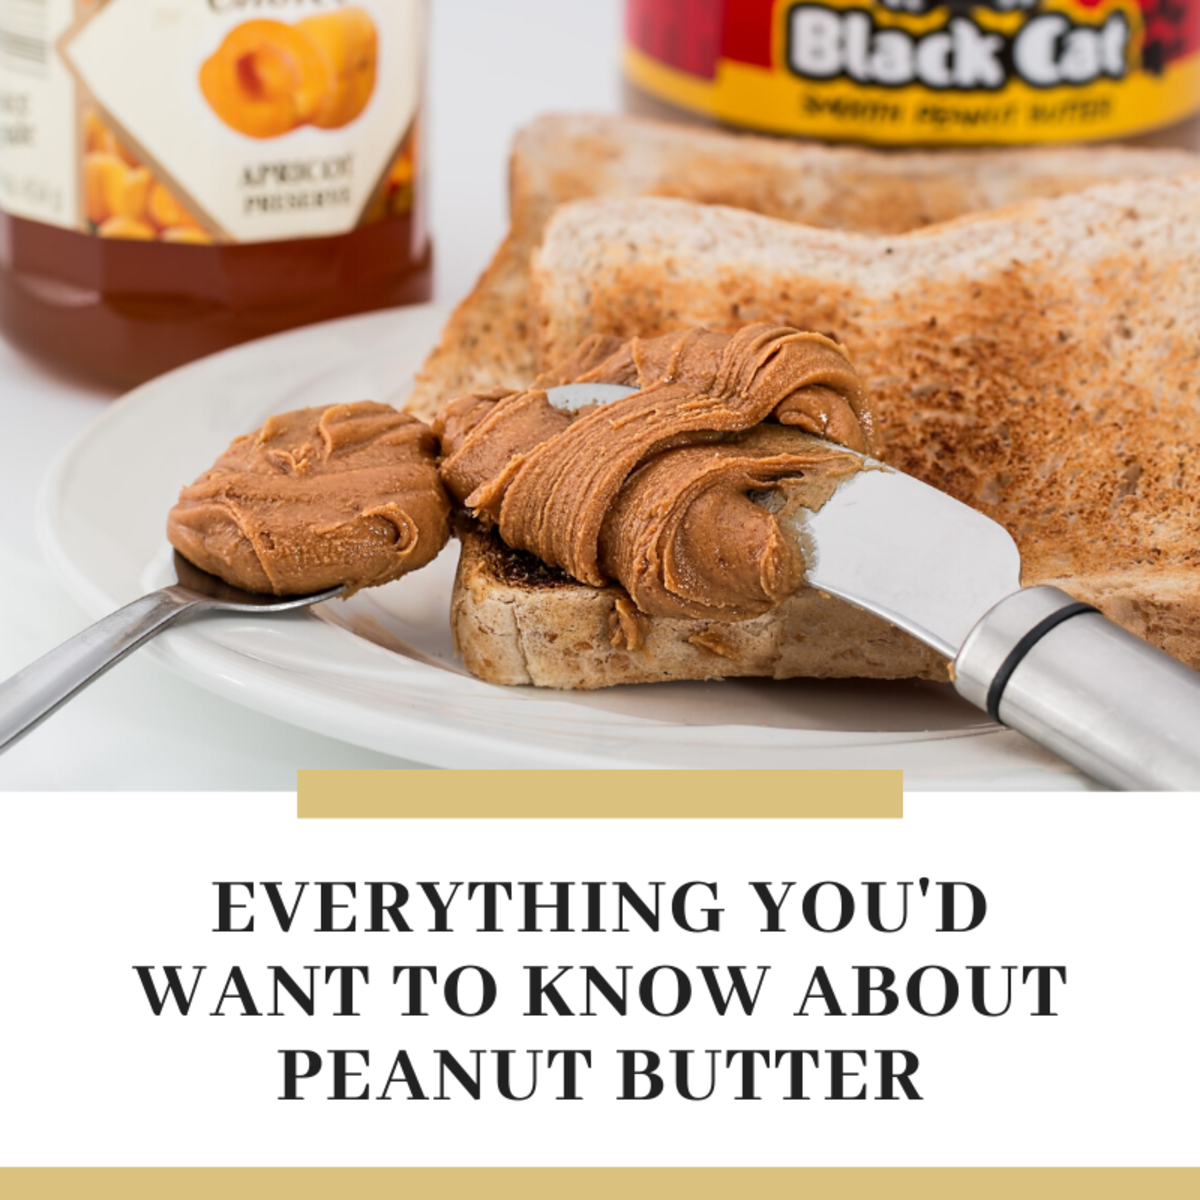 Explore how to use peanut butter for breakfast, lunch, dinner, and dessert.